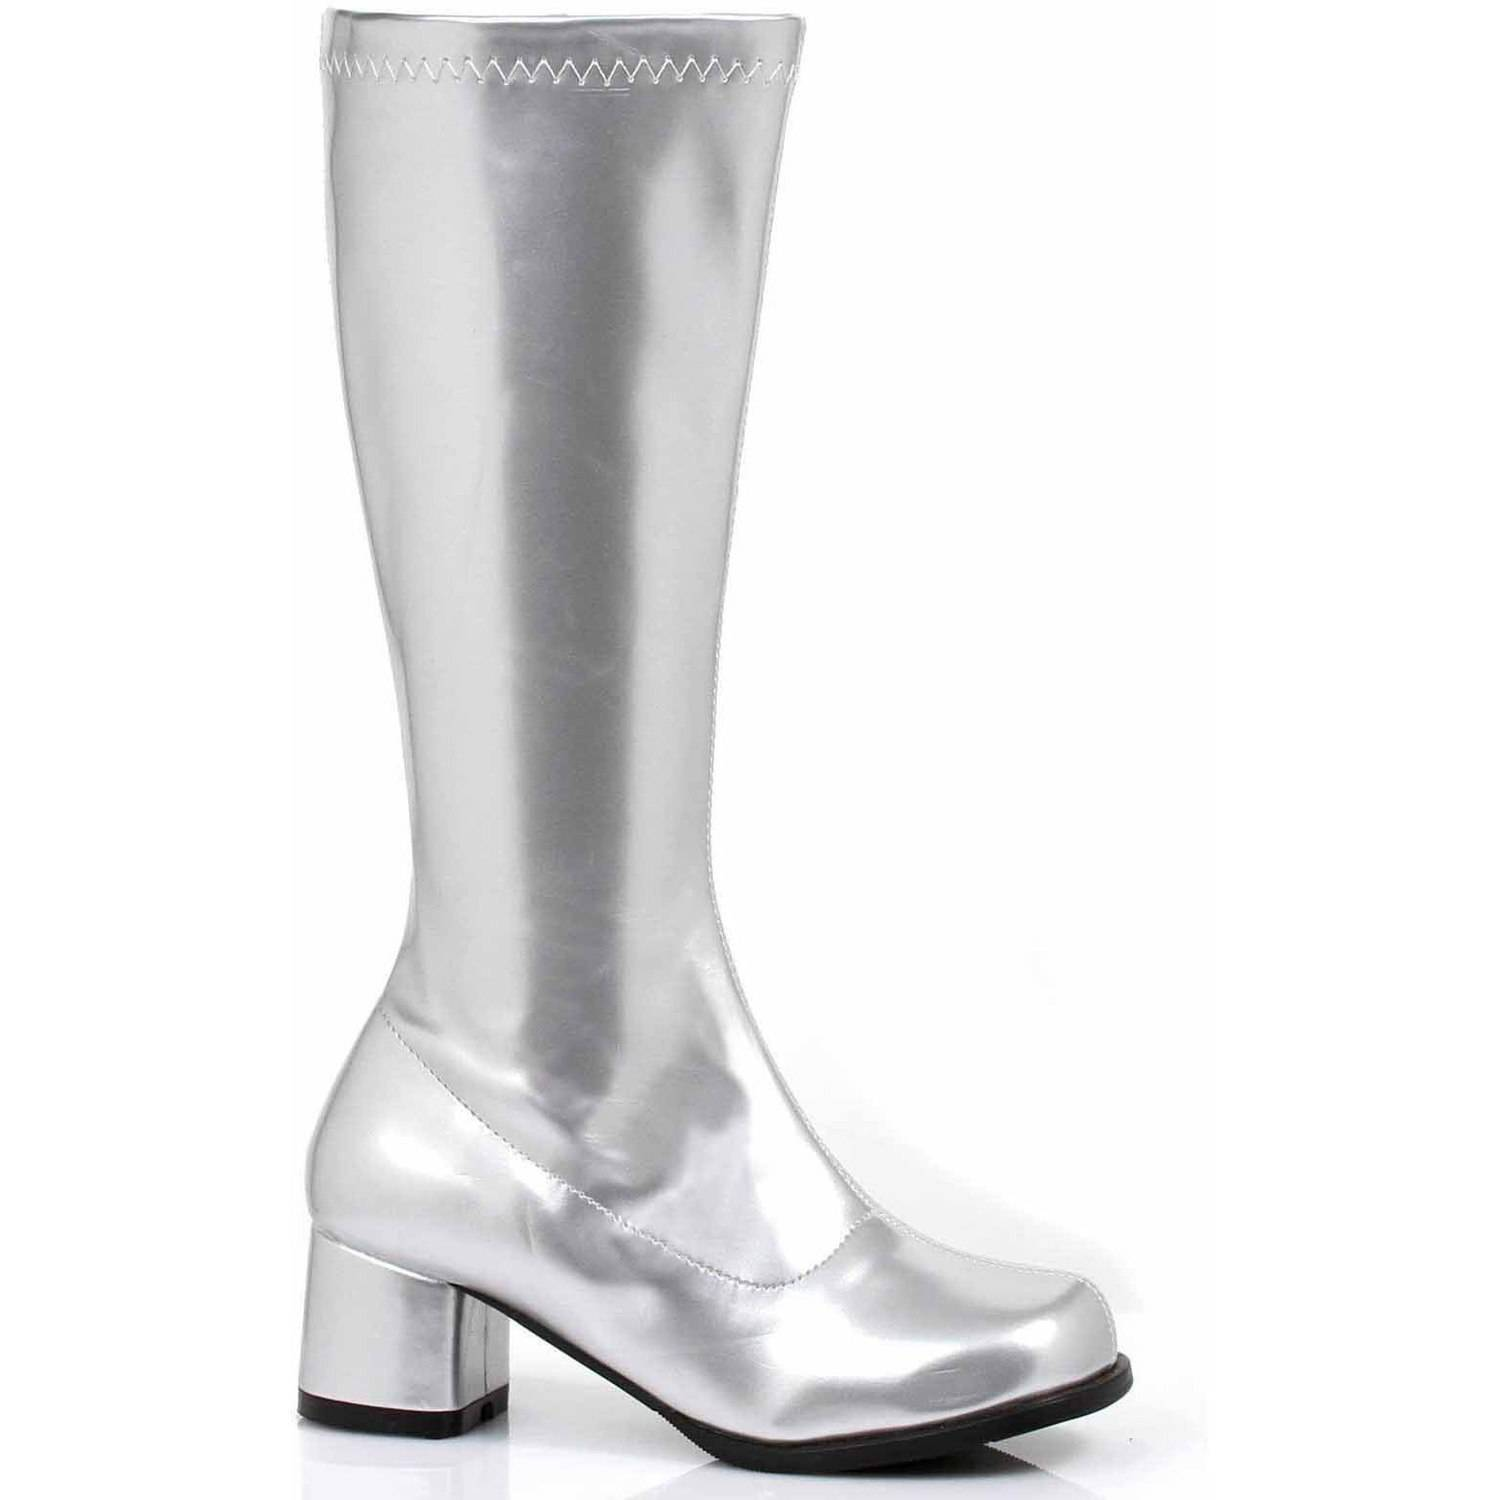 Dora Silver Boots Girls' Child Costume Accessory by Generic